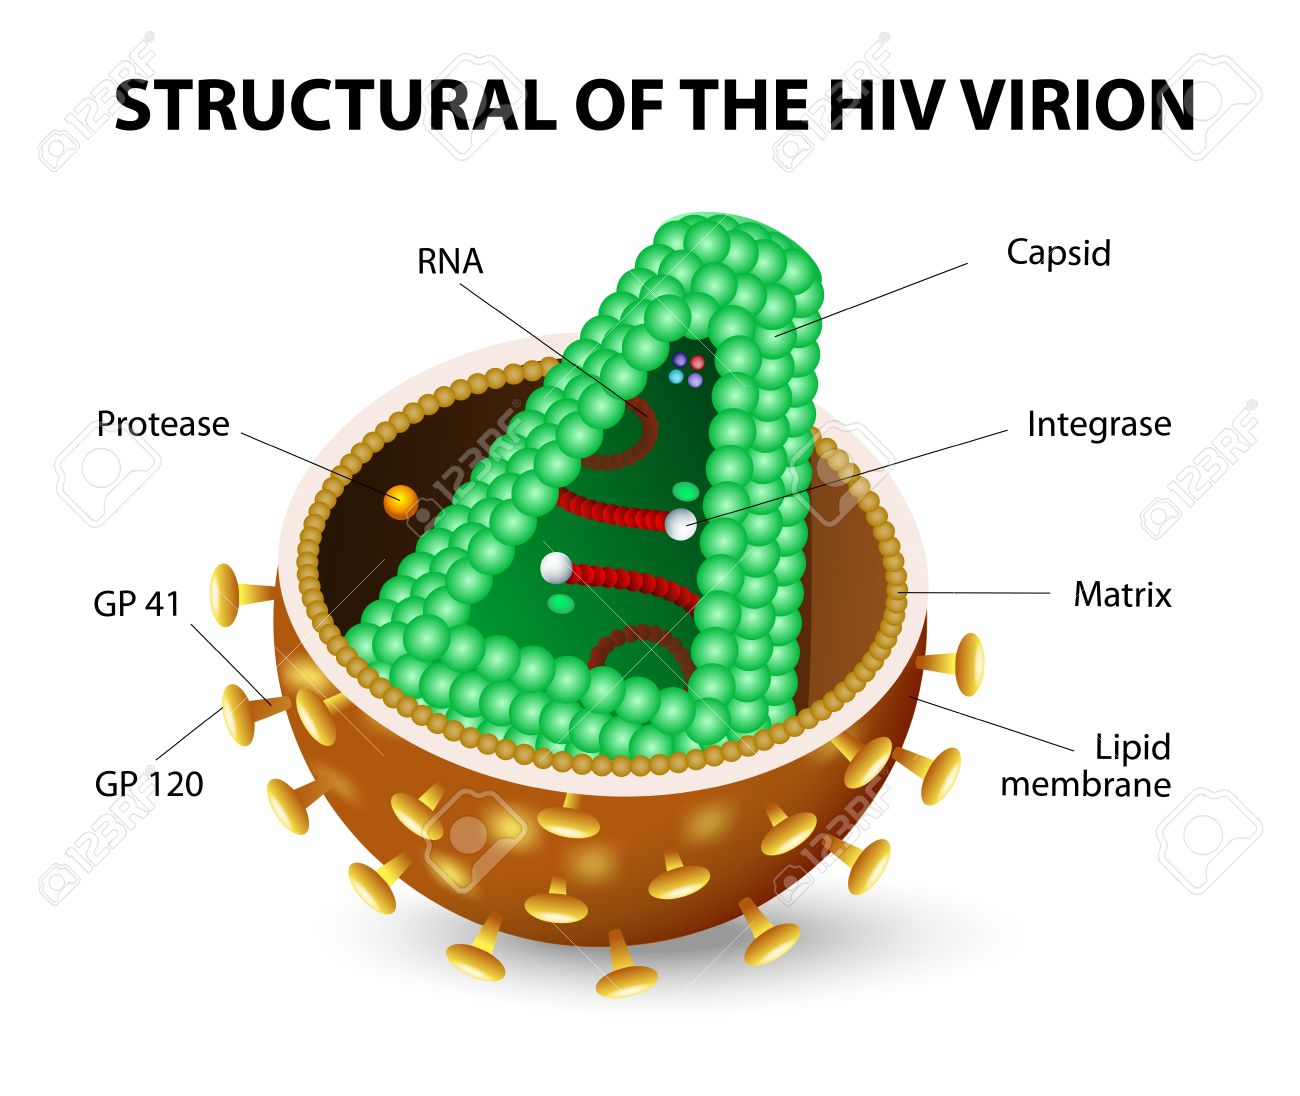 hight resolution of the human immunodeficiency virus or hiv anatomy of the aids virion vector diagram stock